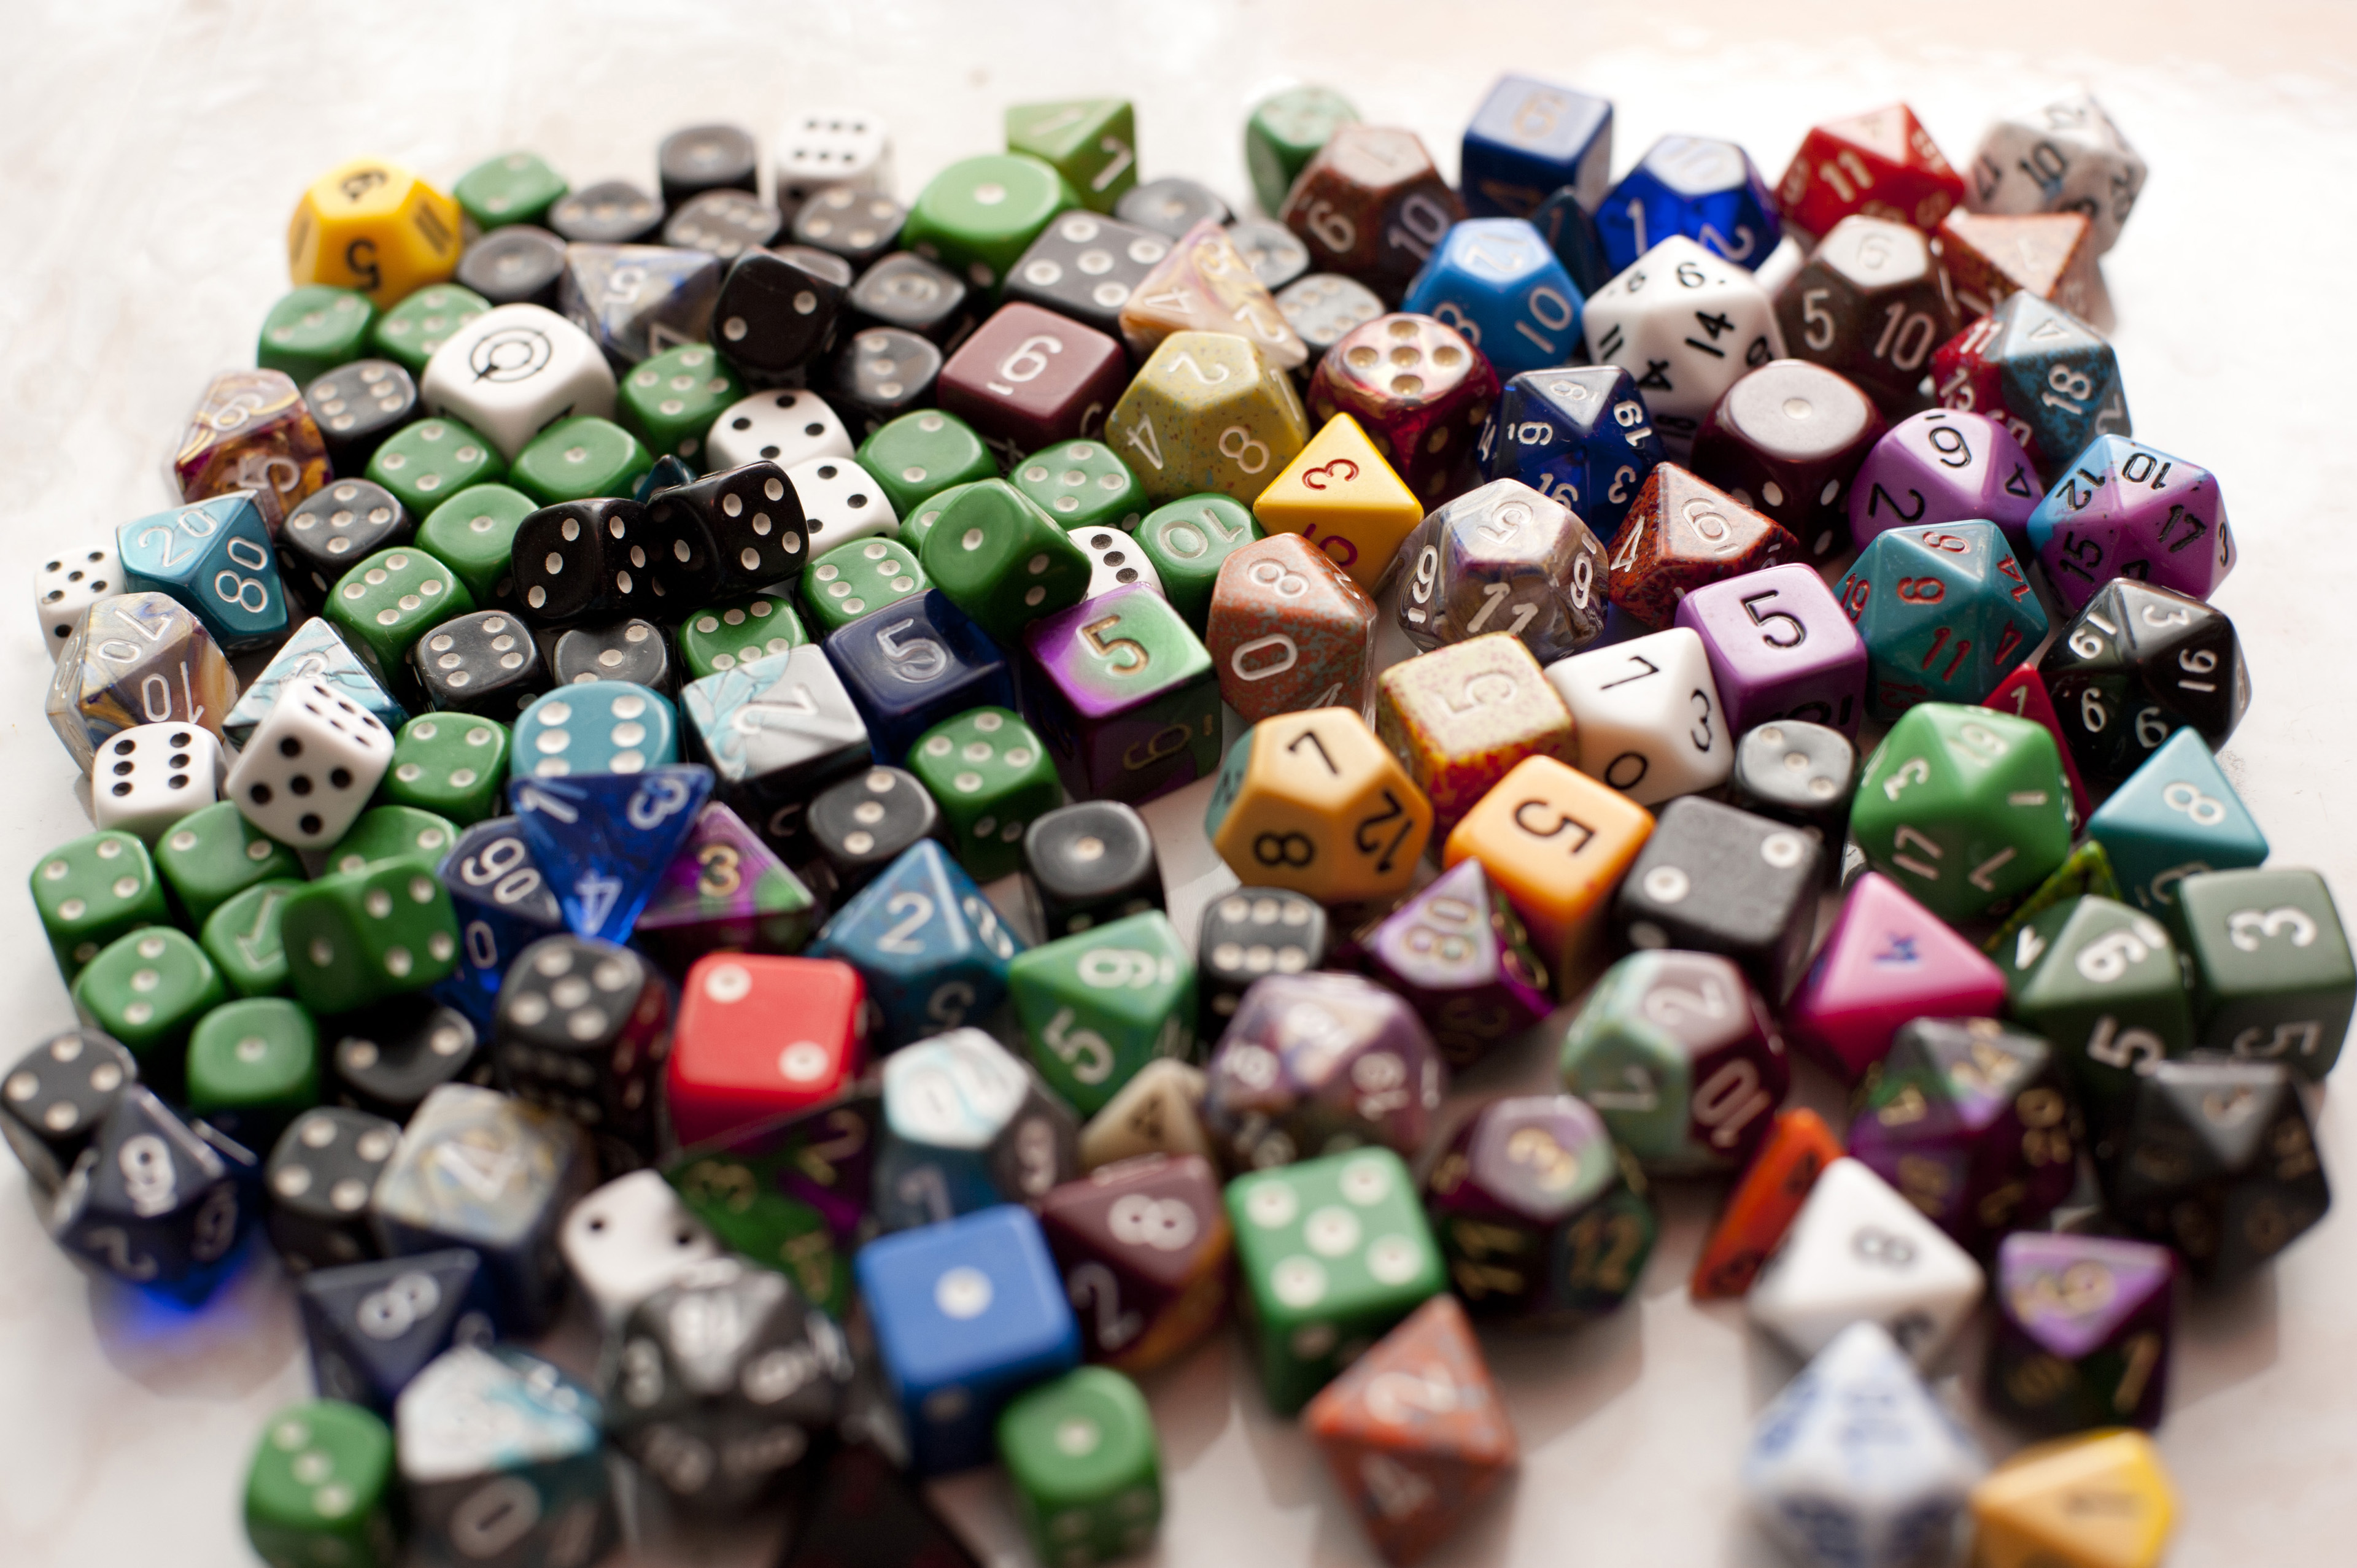 An assortments of colorful multi-sided gaming dice for role palying adventure games